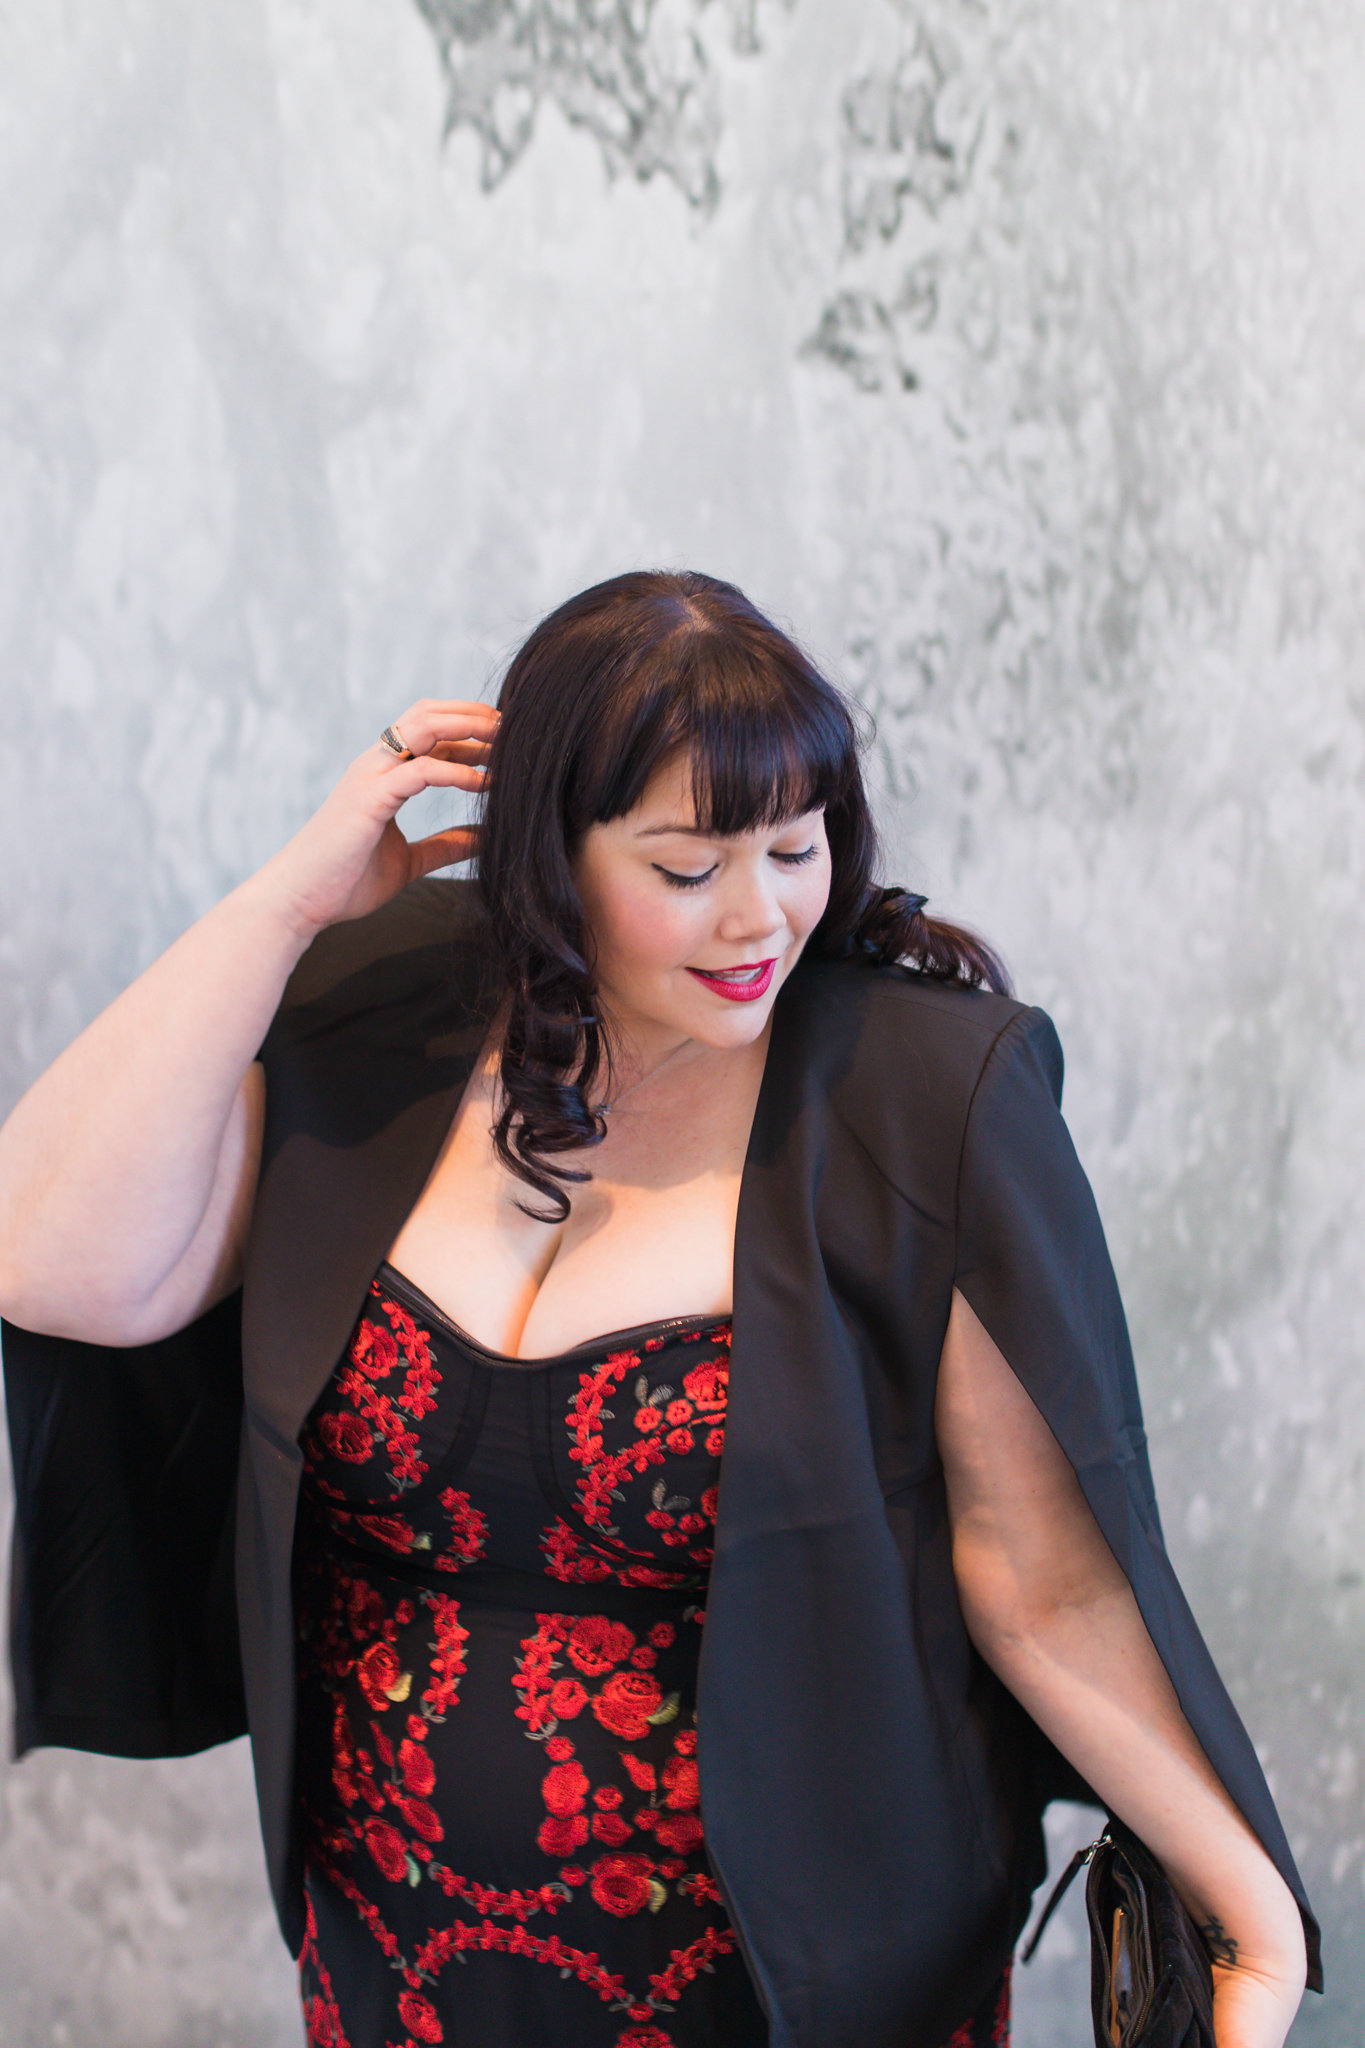 Plus Size Valentine's Day Look, City Chic Jacket Cape, City Chic Red Rose Corset Dress, Chicago Plus Size Blogger